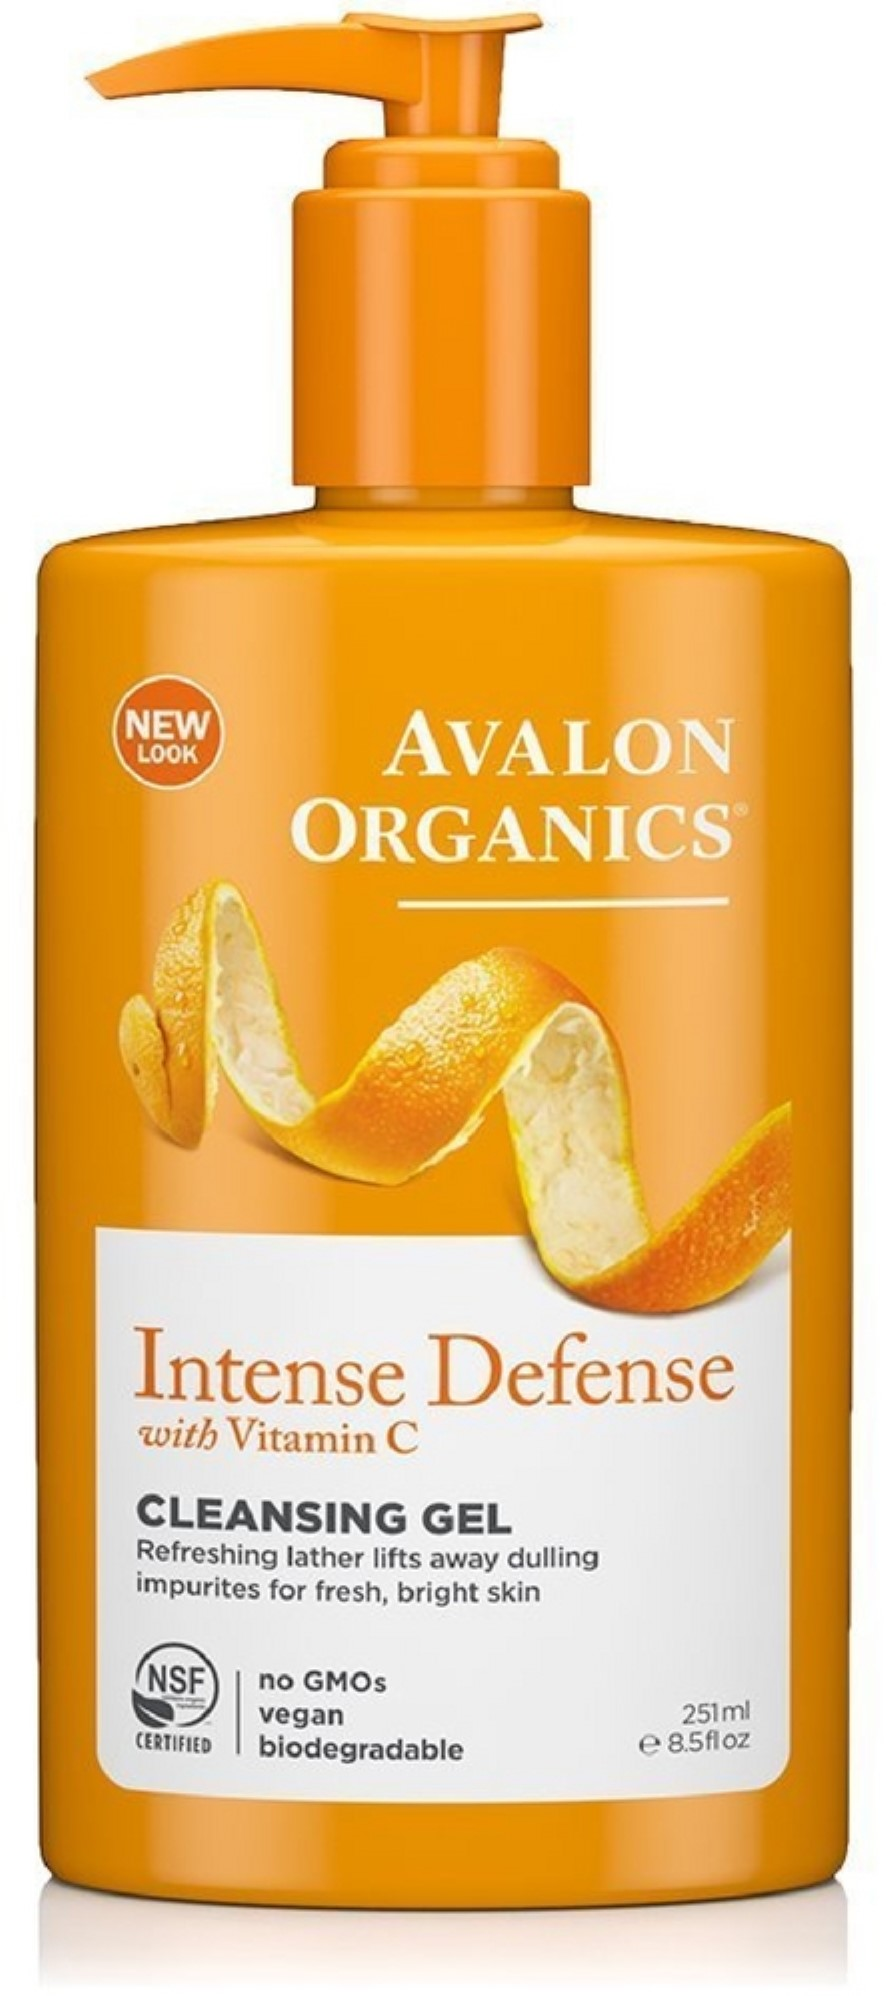 Avalon Organics Intense Defense with Vitamin C Cleansing Gel 8.50 oz (Pack of 3) Medicube Red Foam Cleanser 120ml Whitening